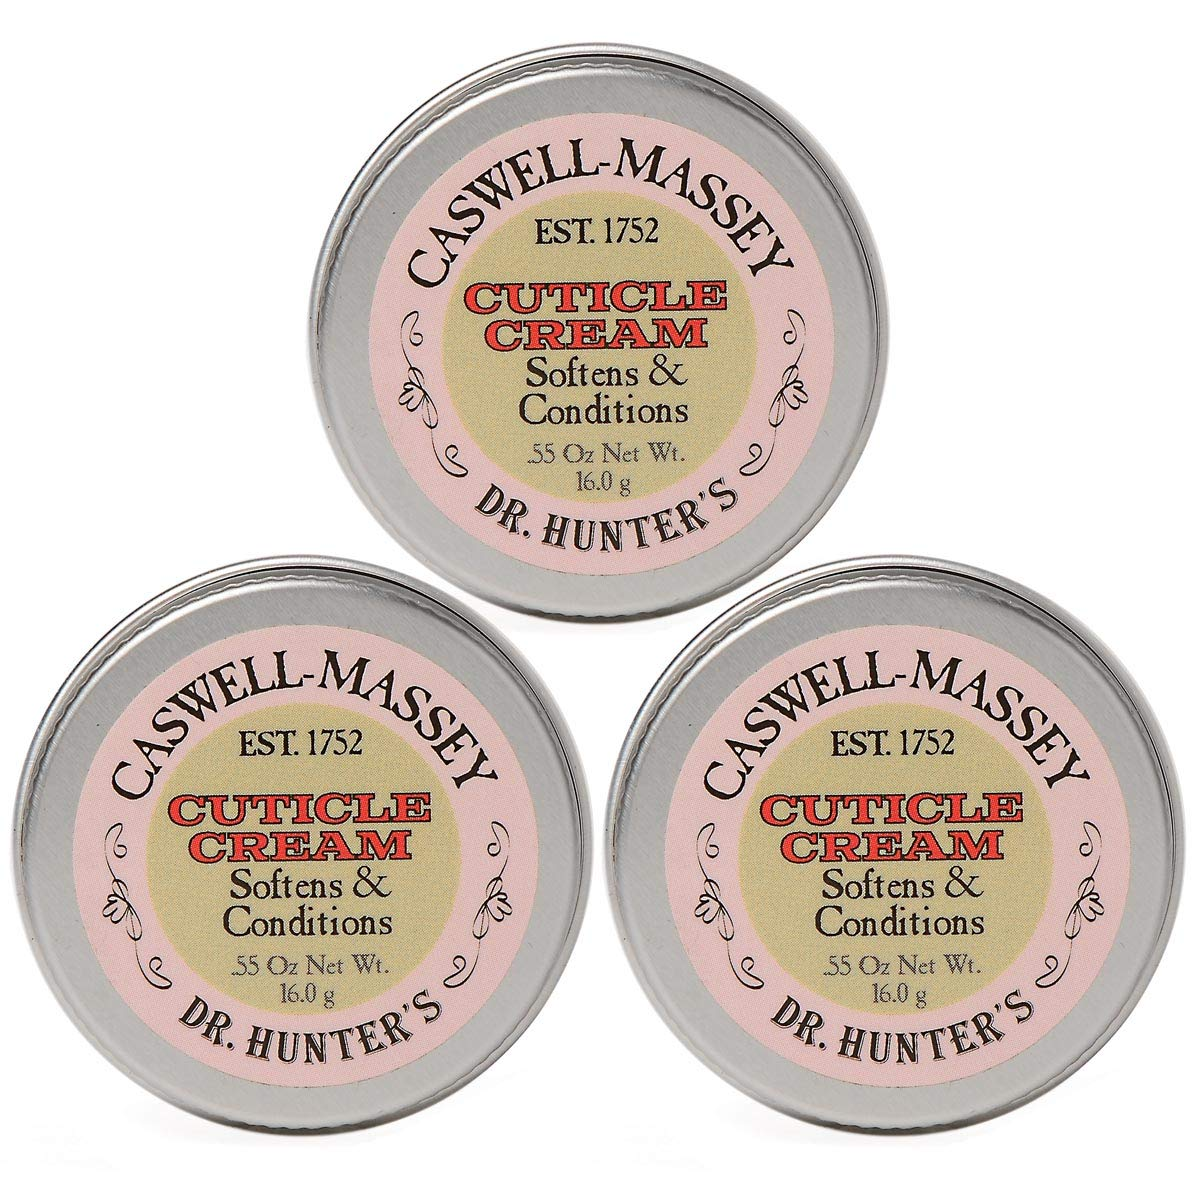 Caswell-Massey Dr. Hunter's Cuticle Cream - Natural Balm Promotes Healthy Nails, Nail Growth - 0.55 Ounces, 3 Pack by Caswell-Massey